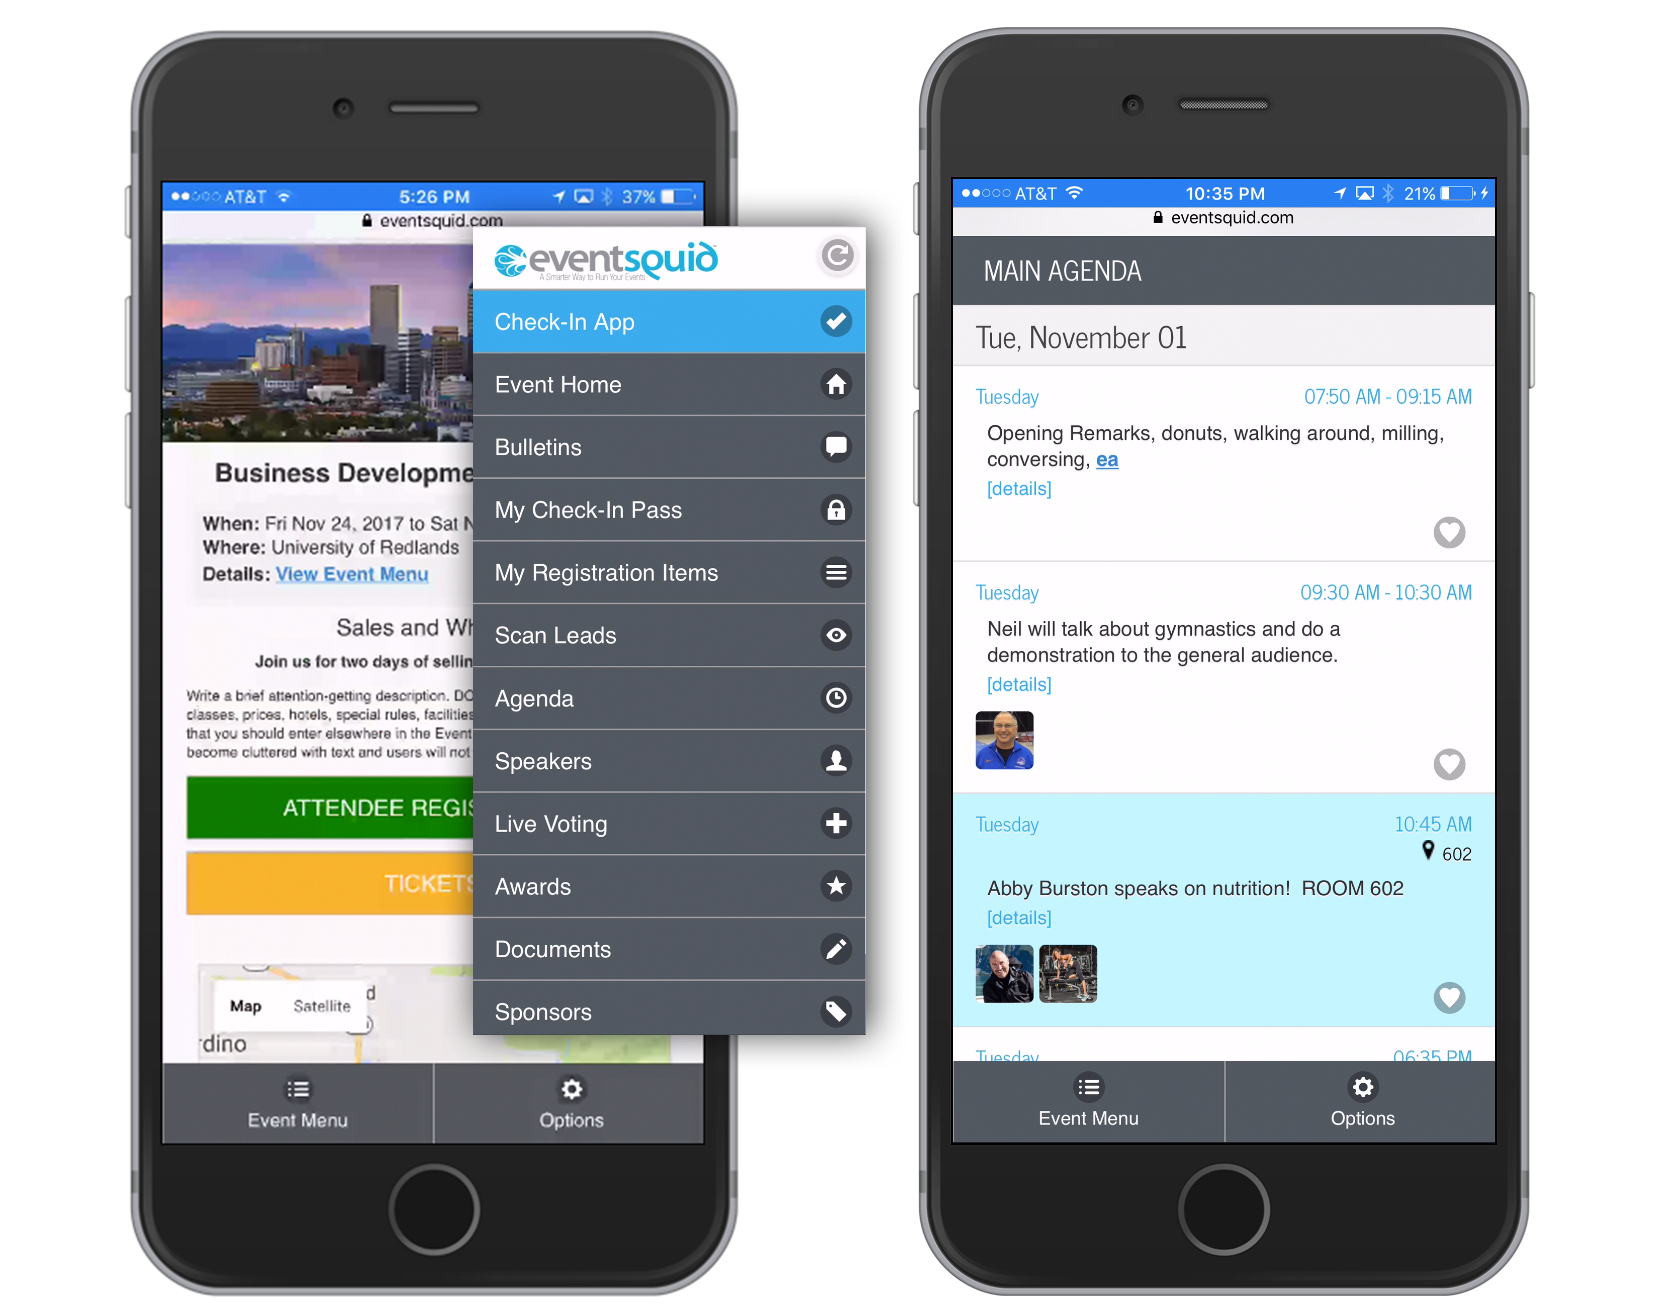 A pre-built mobile Eventsquid app is available without any app store installation required, running inside the web browser of any smart device